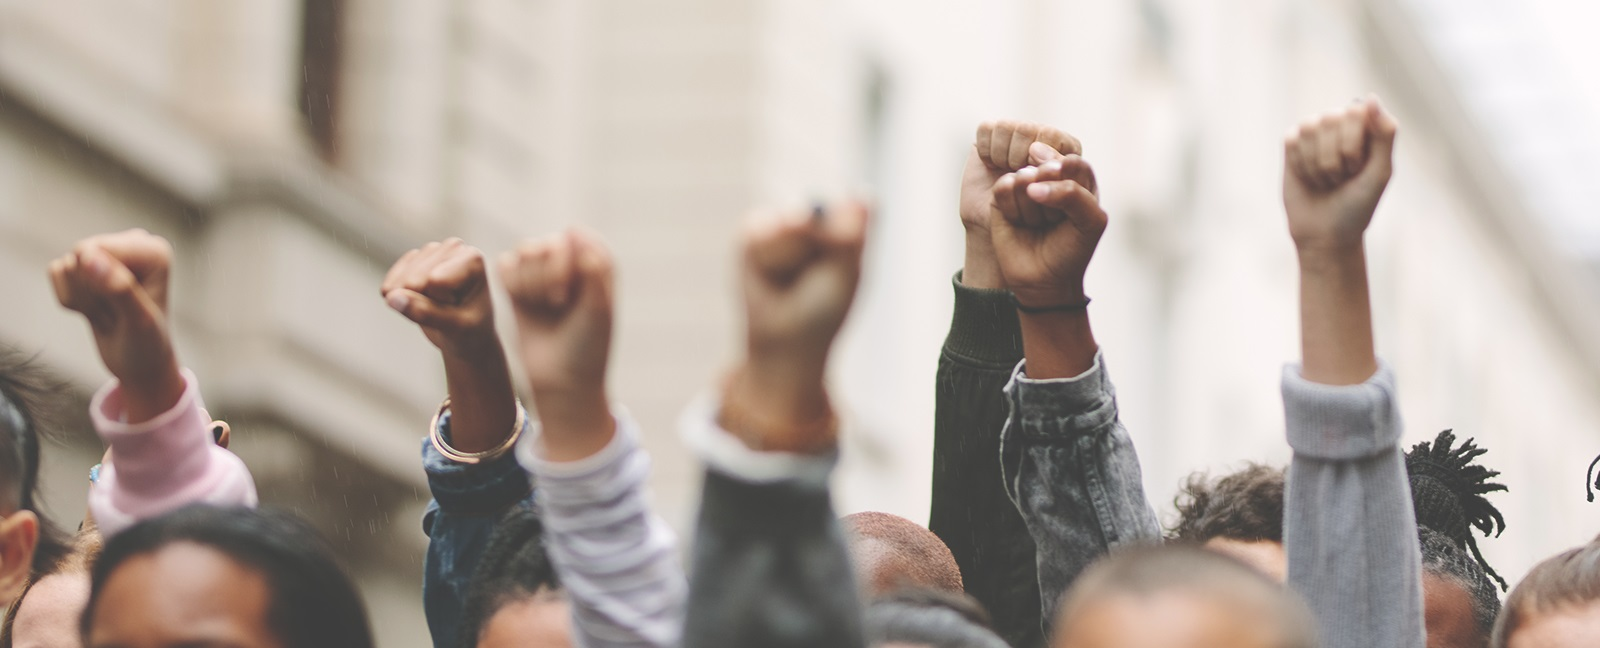 Indy Day of Solidarity – We Stand Together | Eli Lilly and Company